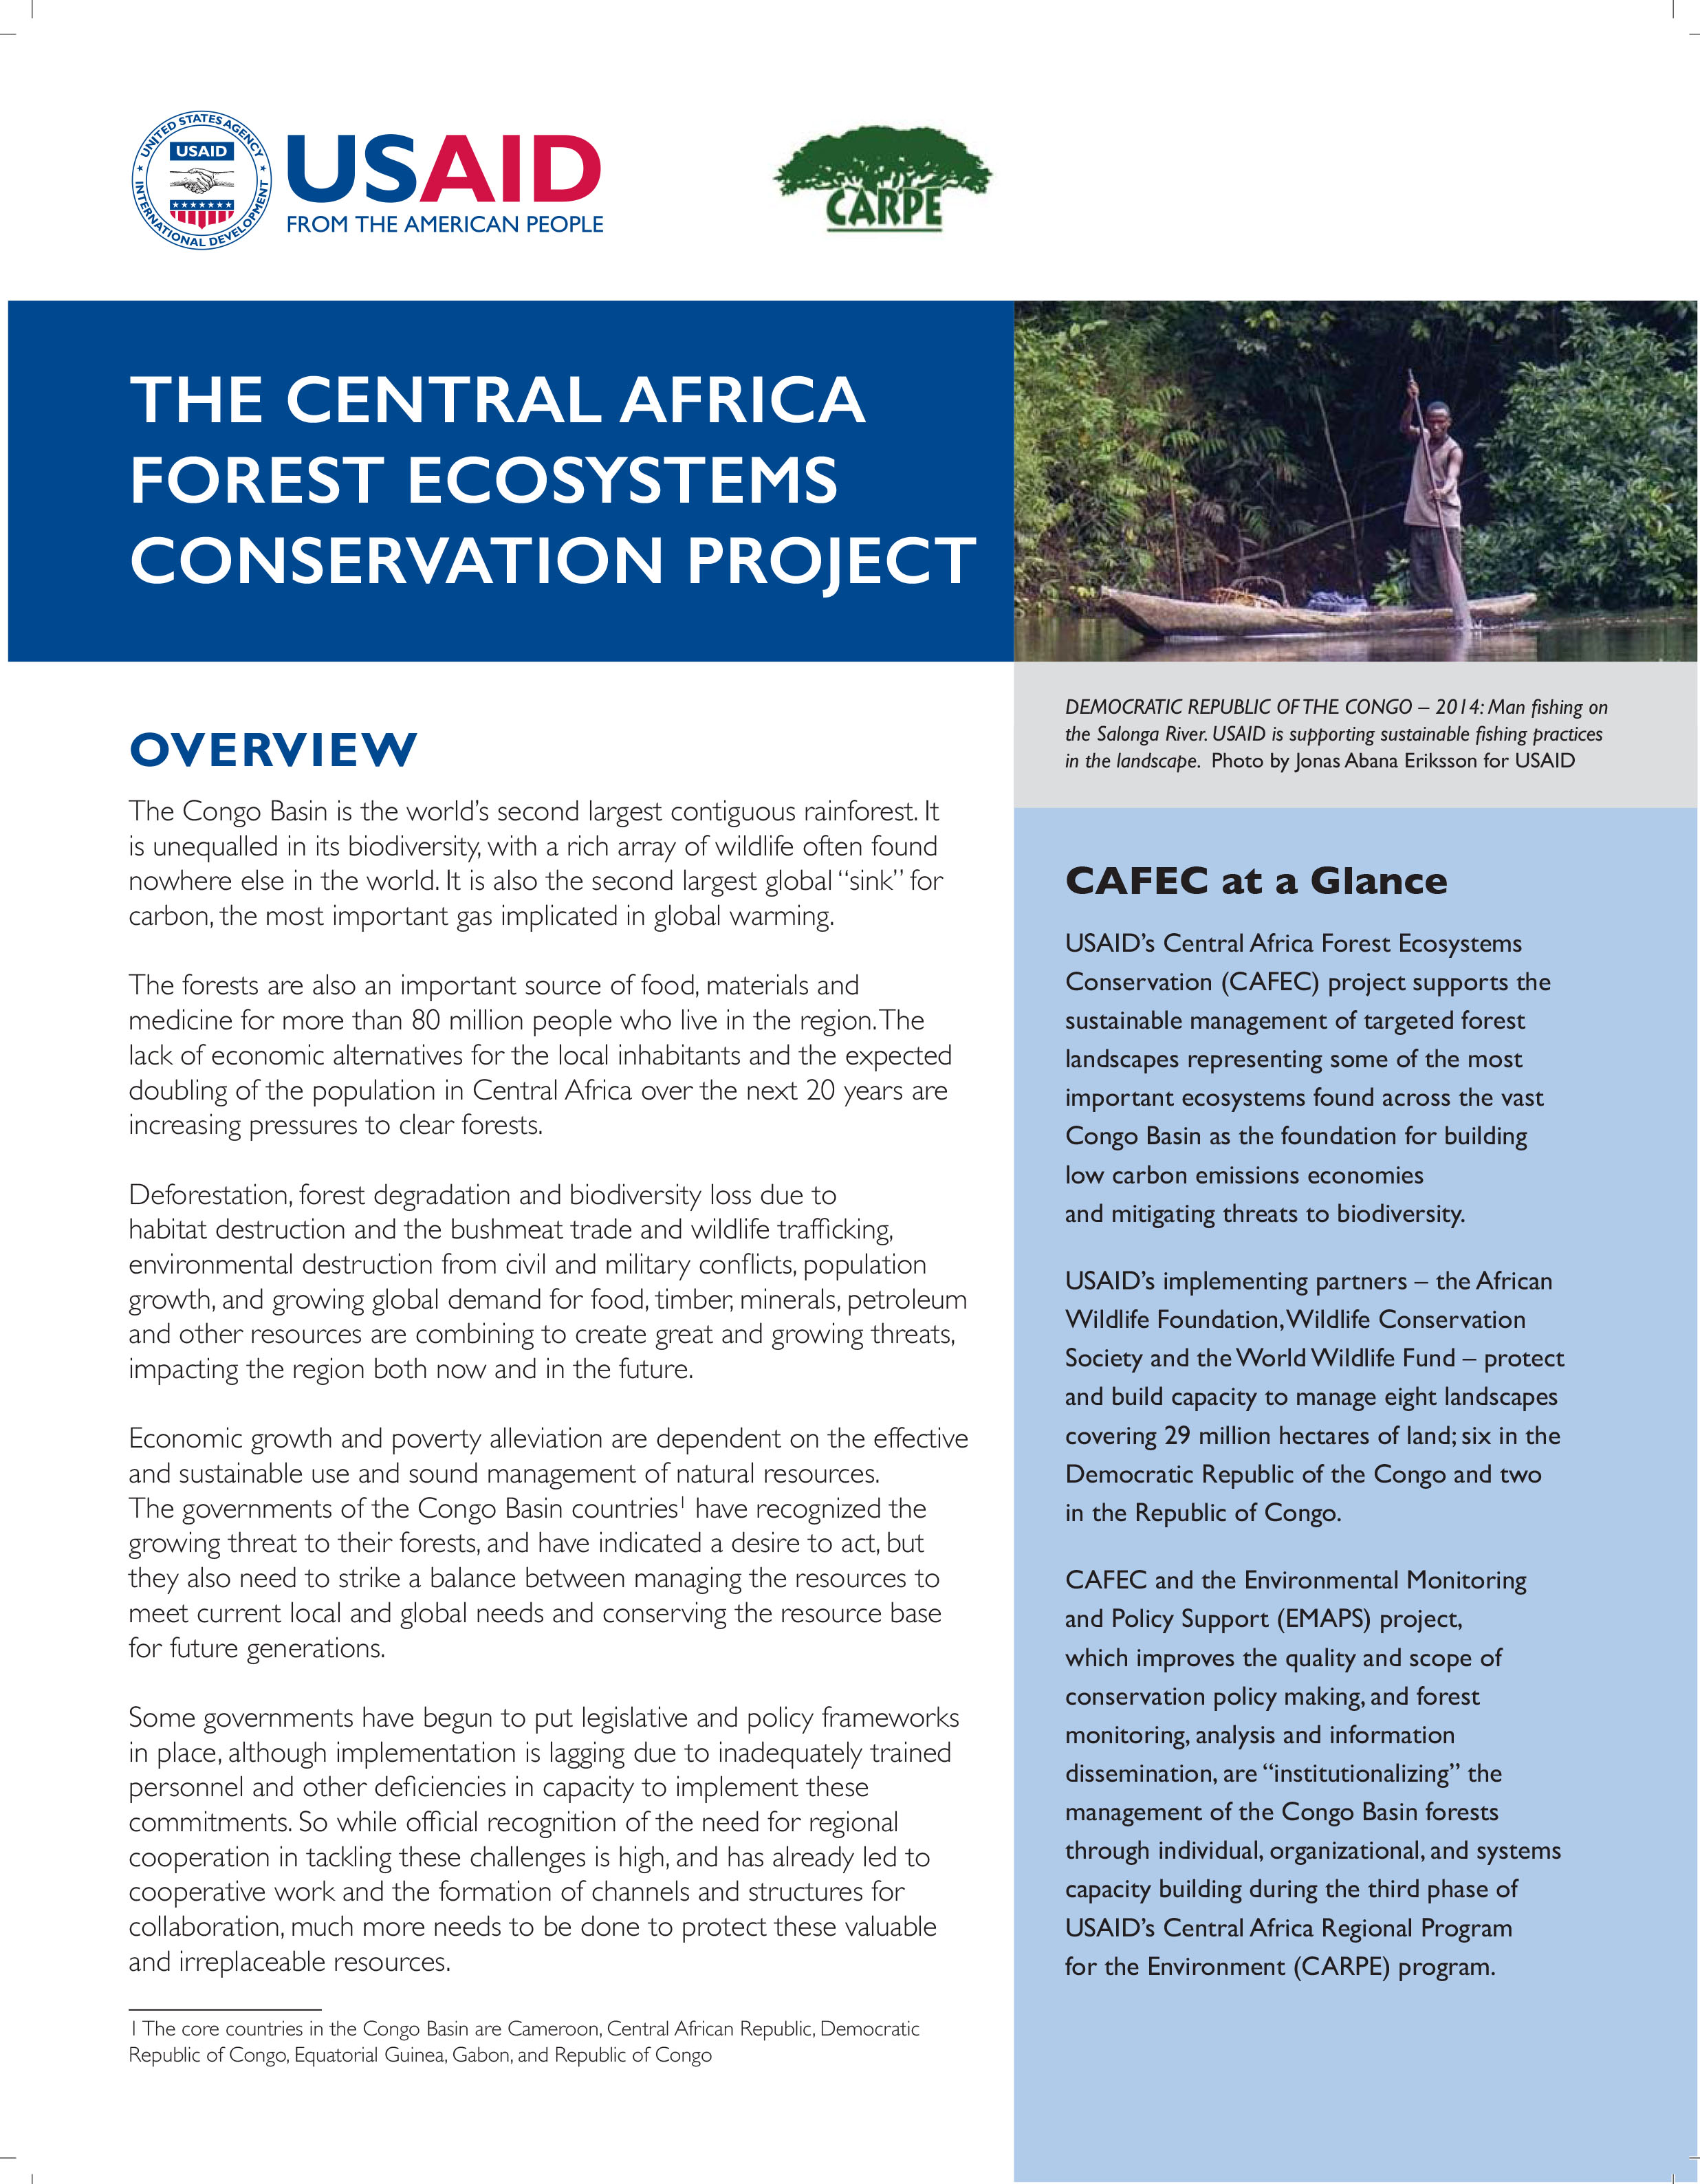 The Central Africa Forest Ecosystems Conservation Project